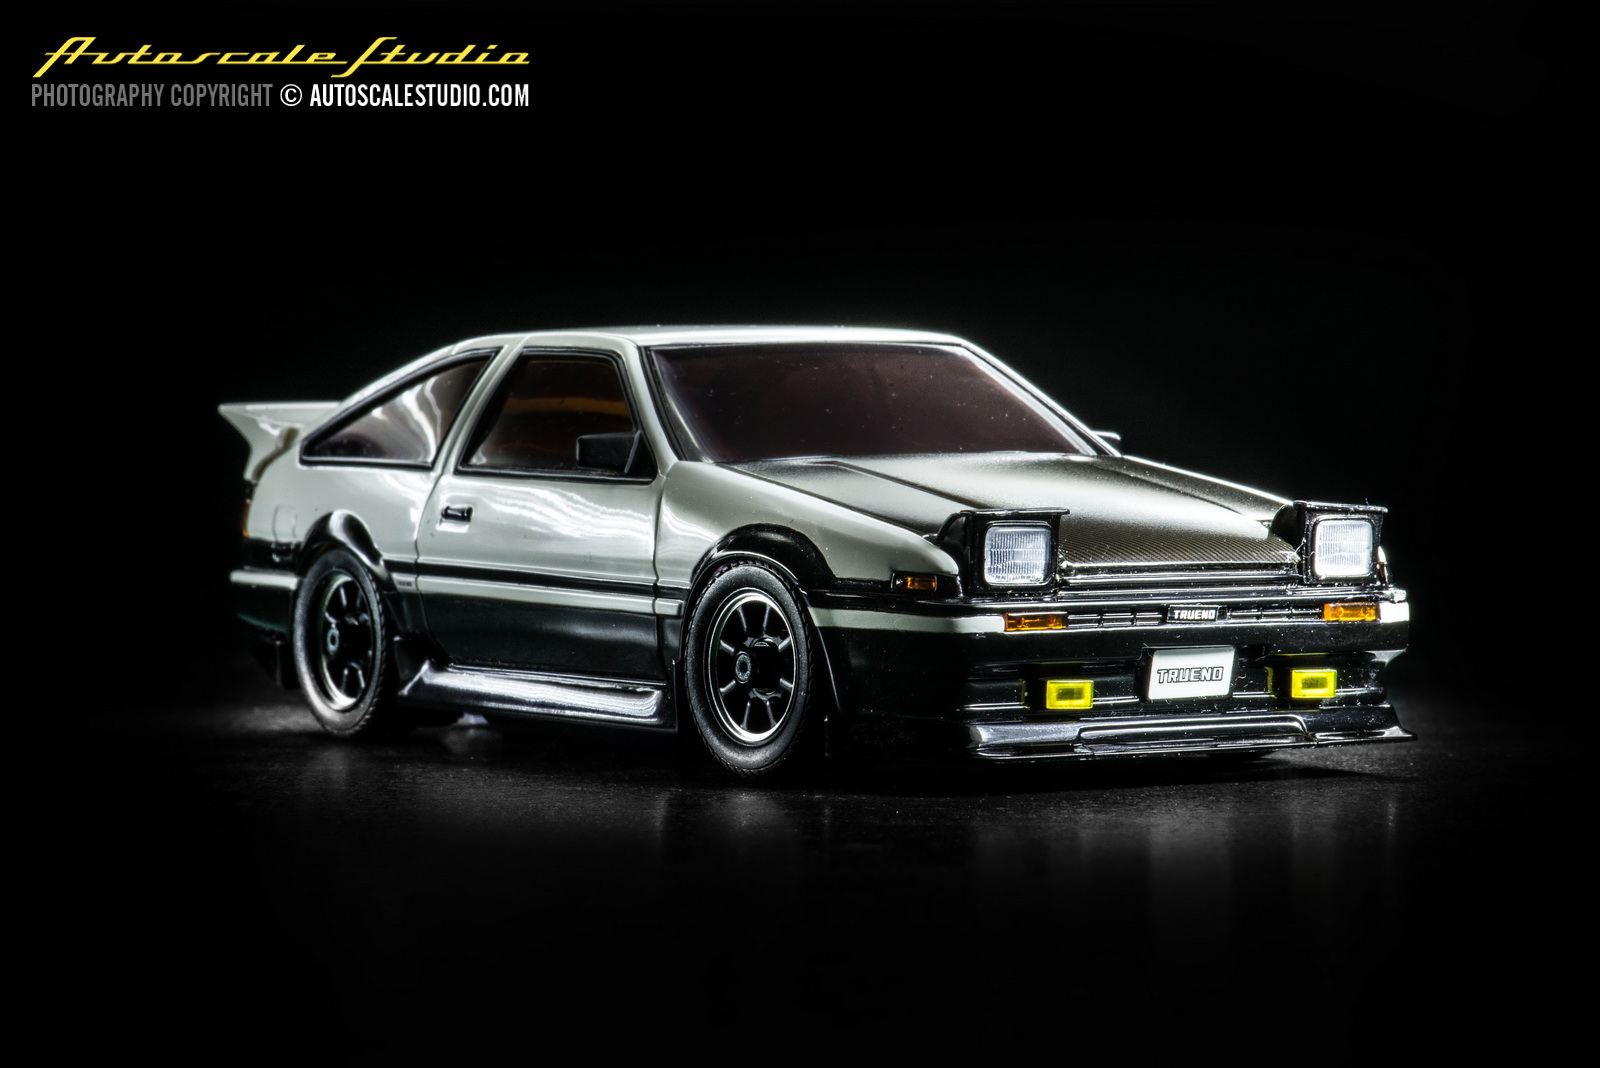 mzp410cw toyota sprinter trueno ae86 panda carbon bonnet. Black Bedroom Furniture Sets. Home Design Ideas